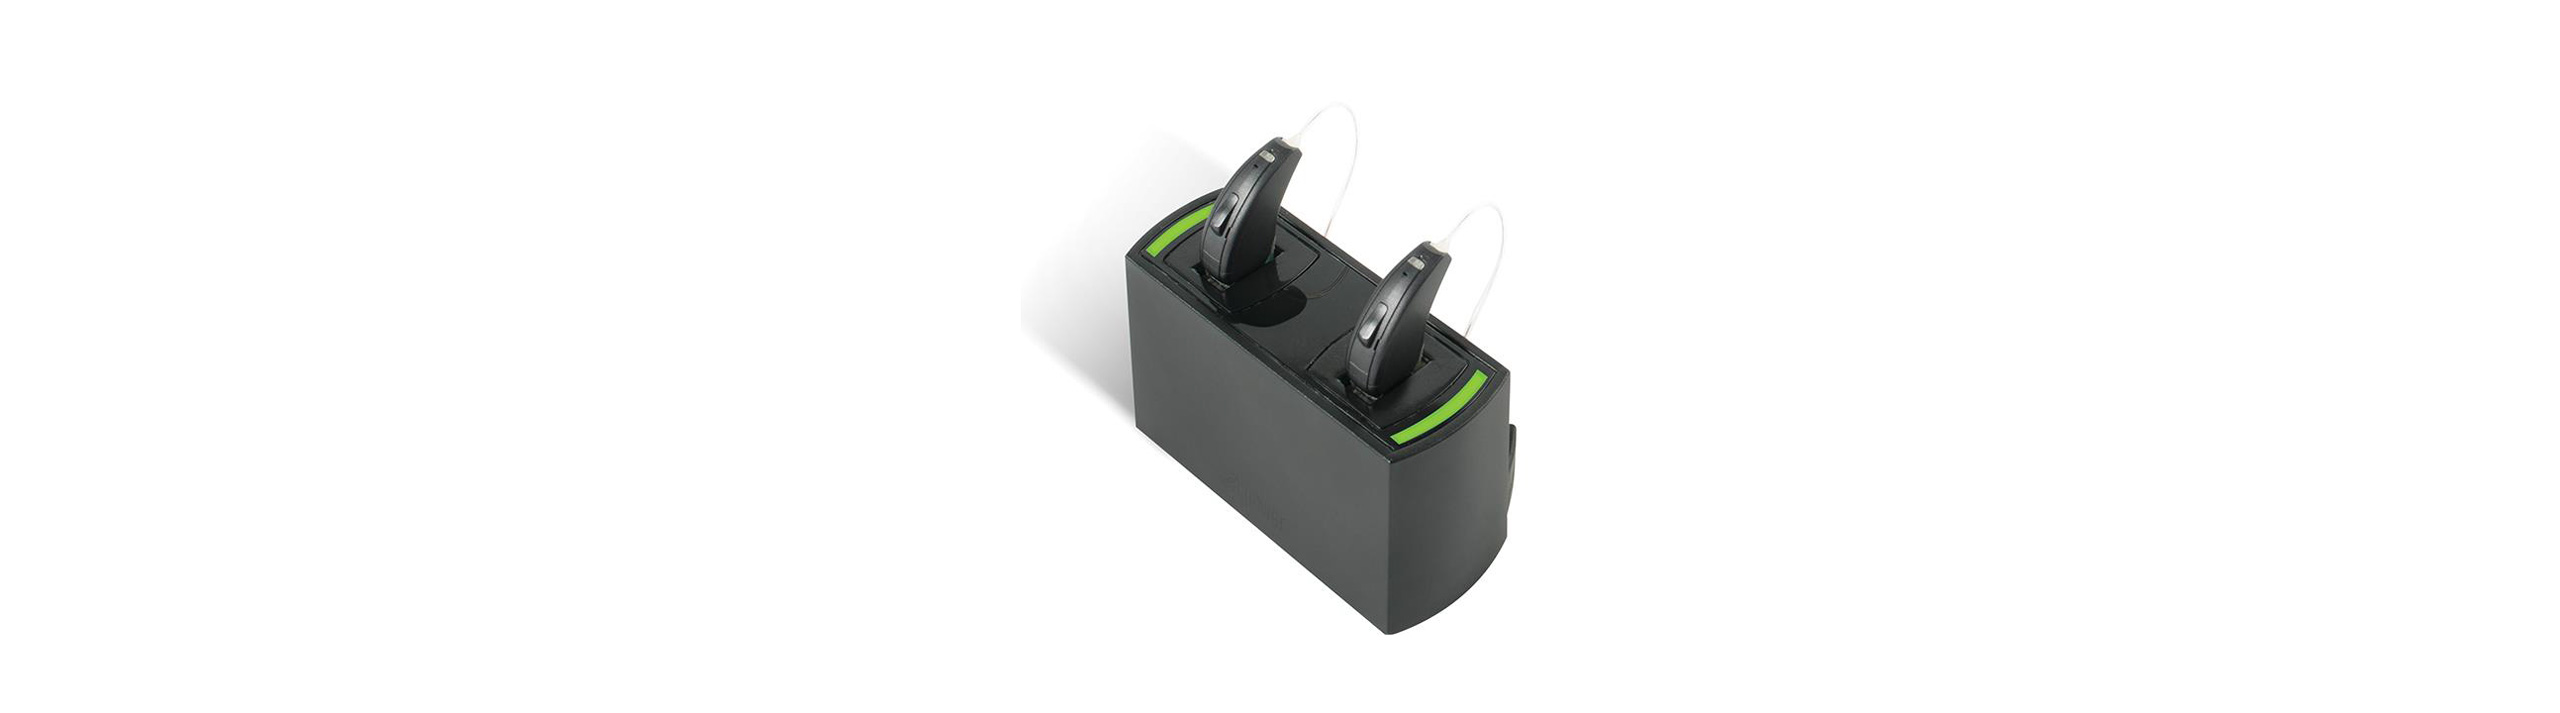 GN Hearing Launches Rechargeable Battery Option for ReSound